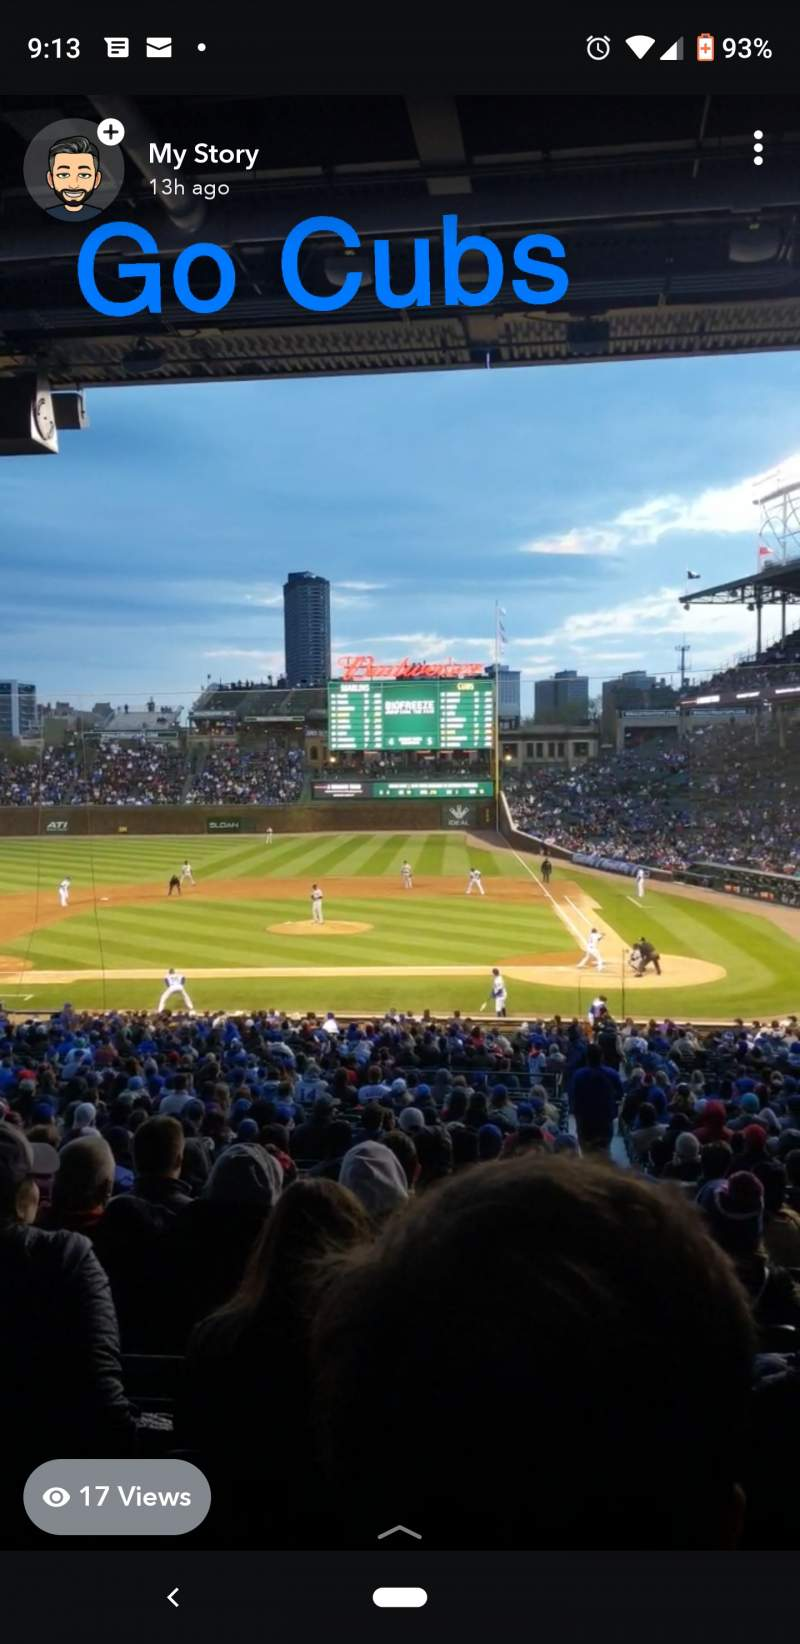 Seating view for Wrigley Field Section 213 Row 11 Seat 14